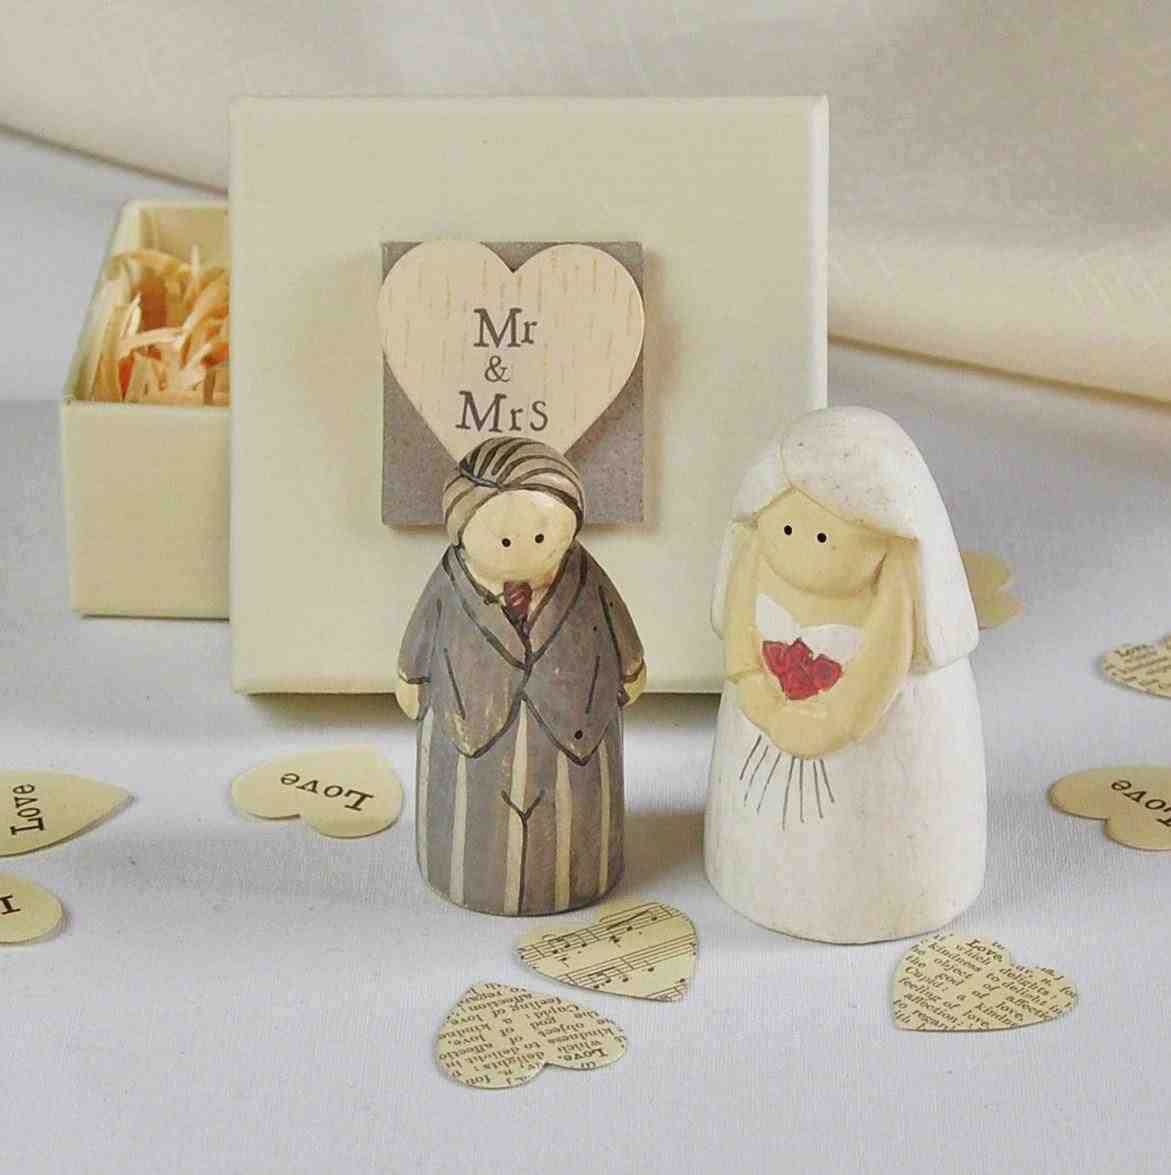 Wedding Gifts Groom To Bride : Wedding Gift Ideas For Bride From Groom - Wedding and Bridal ...